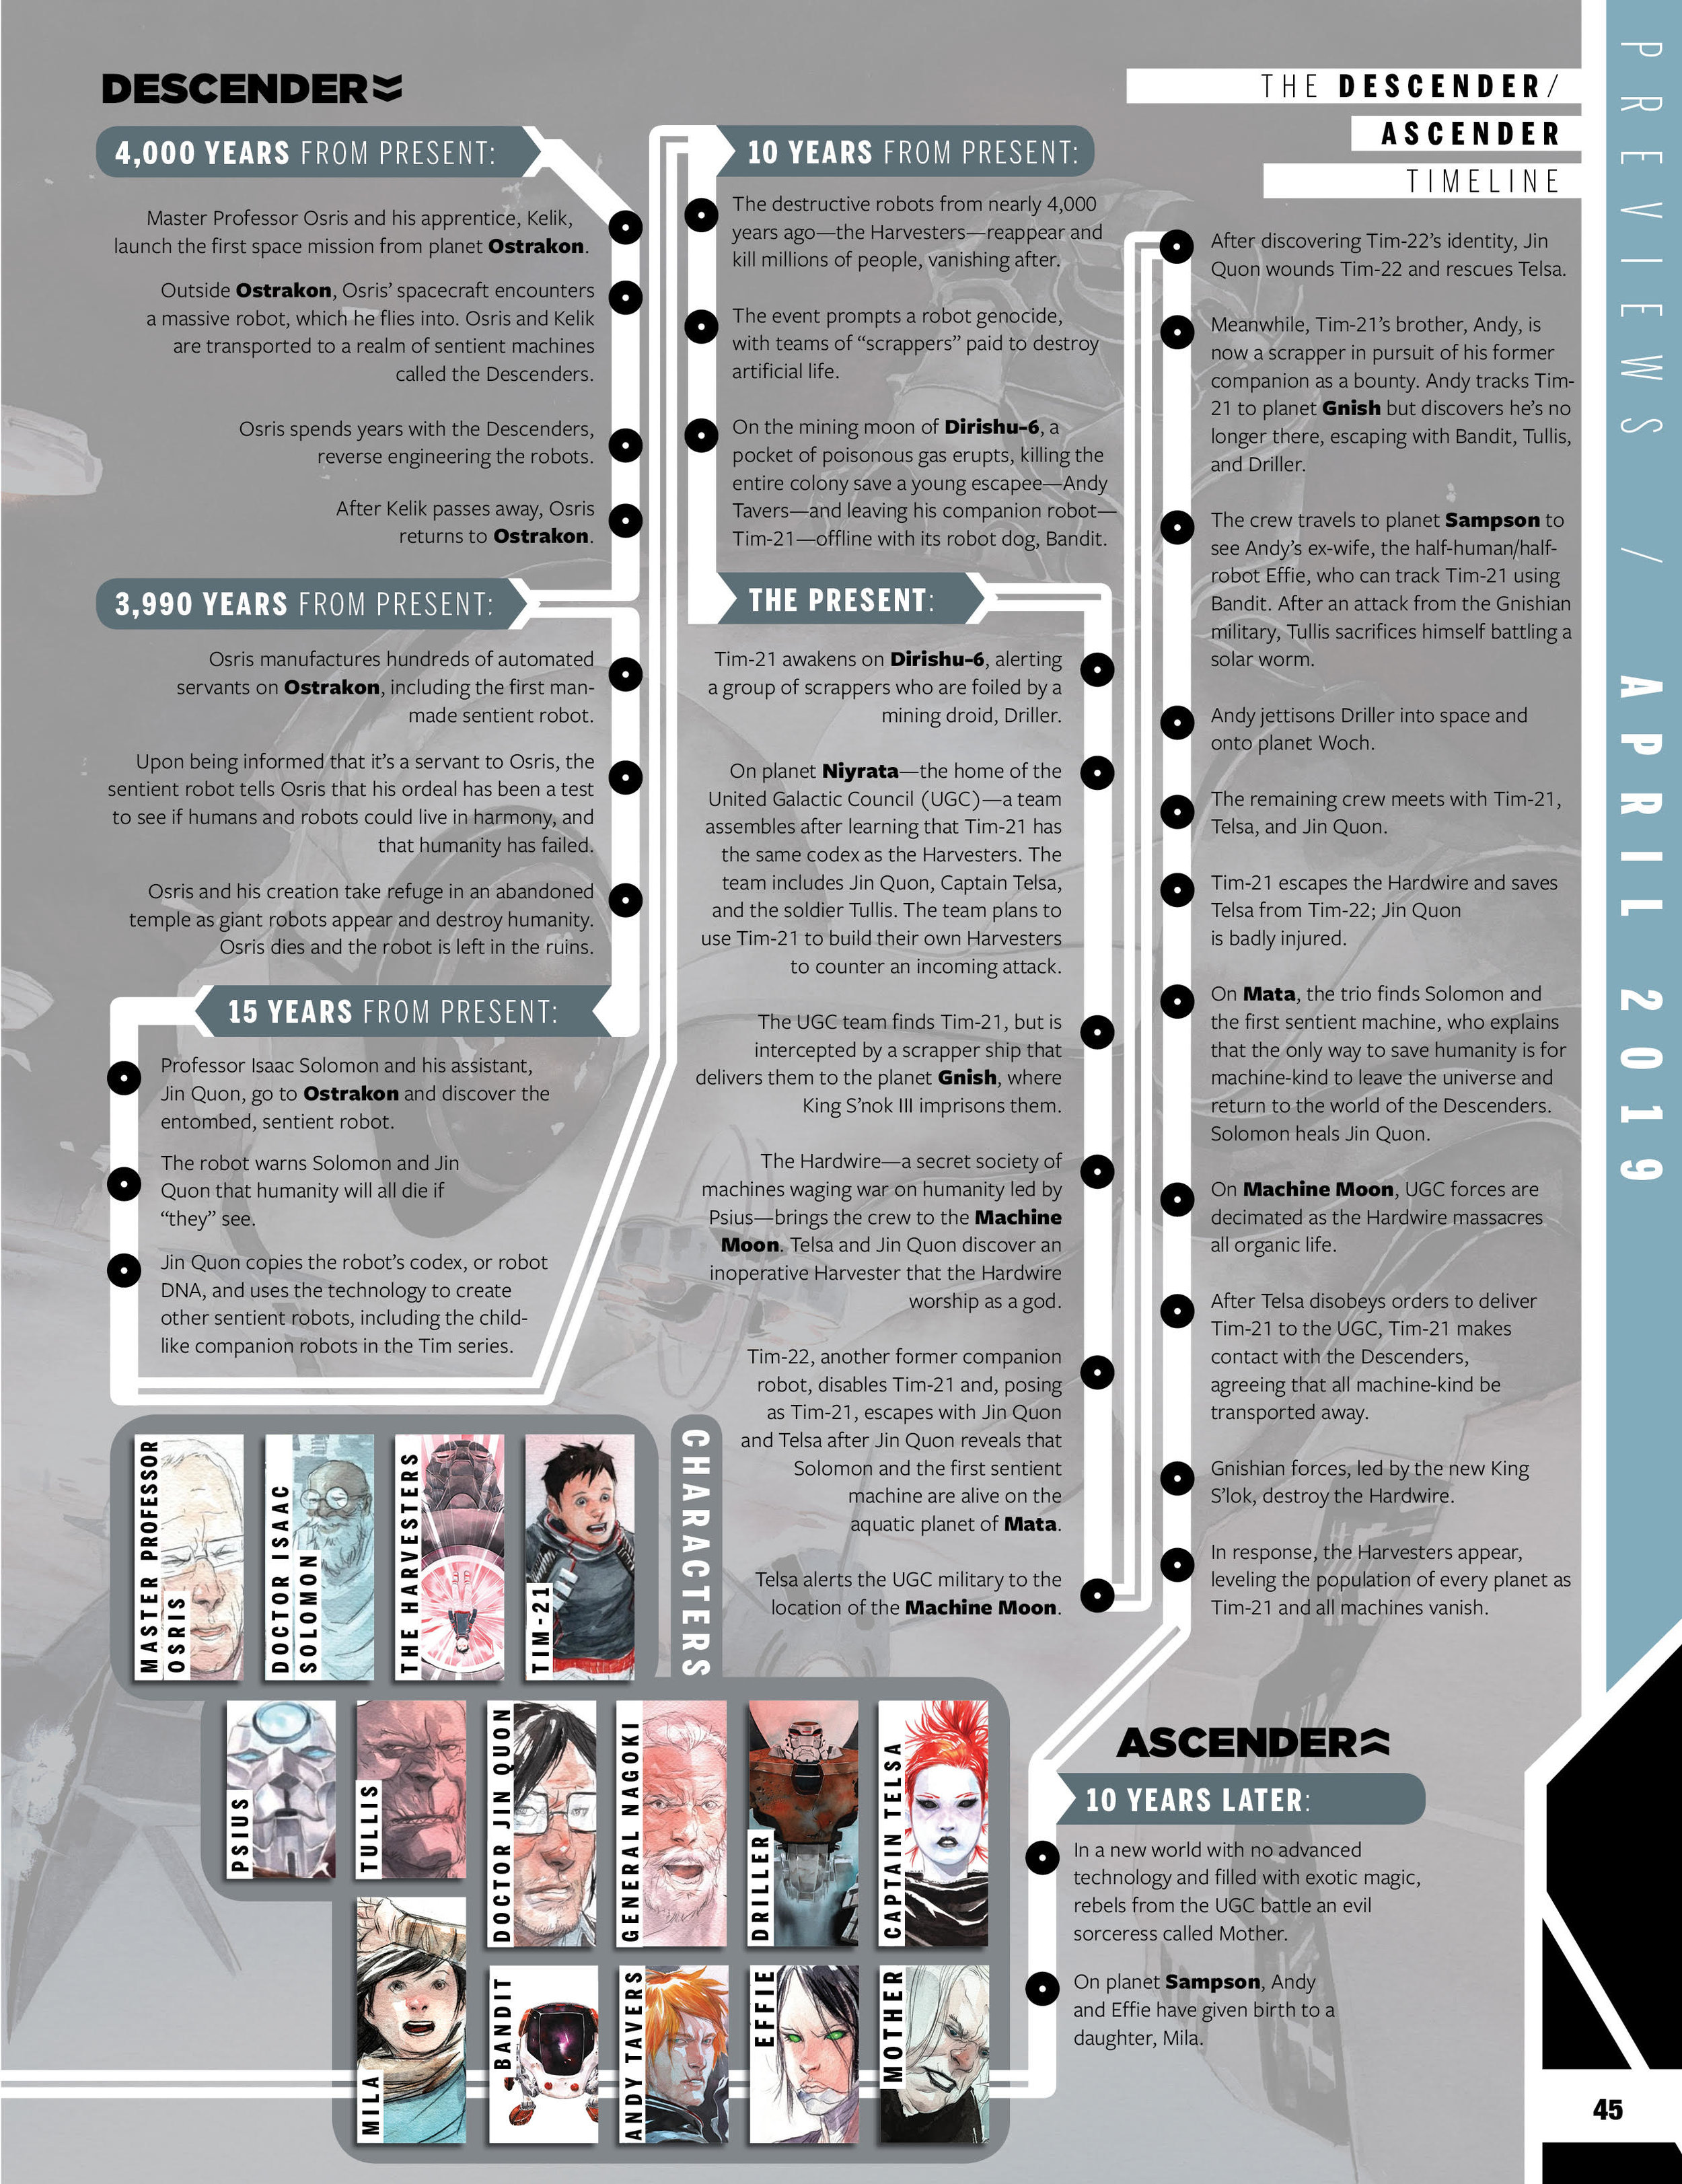 Descender  timeline infographic